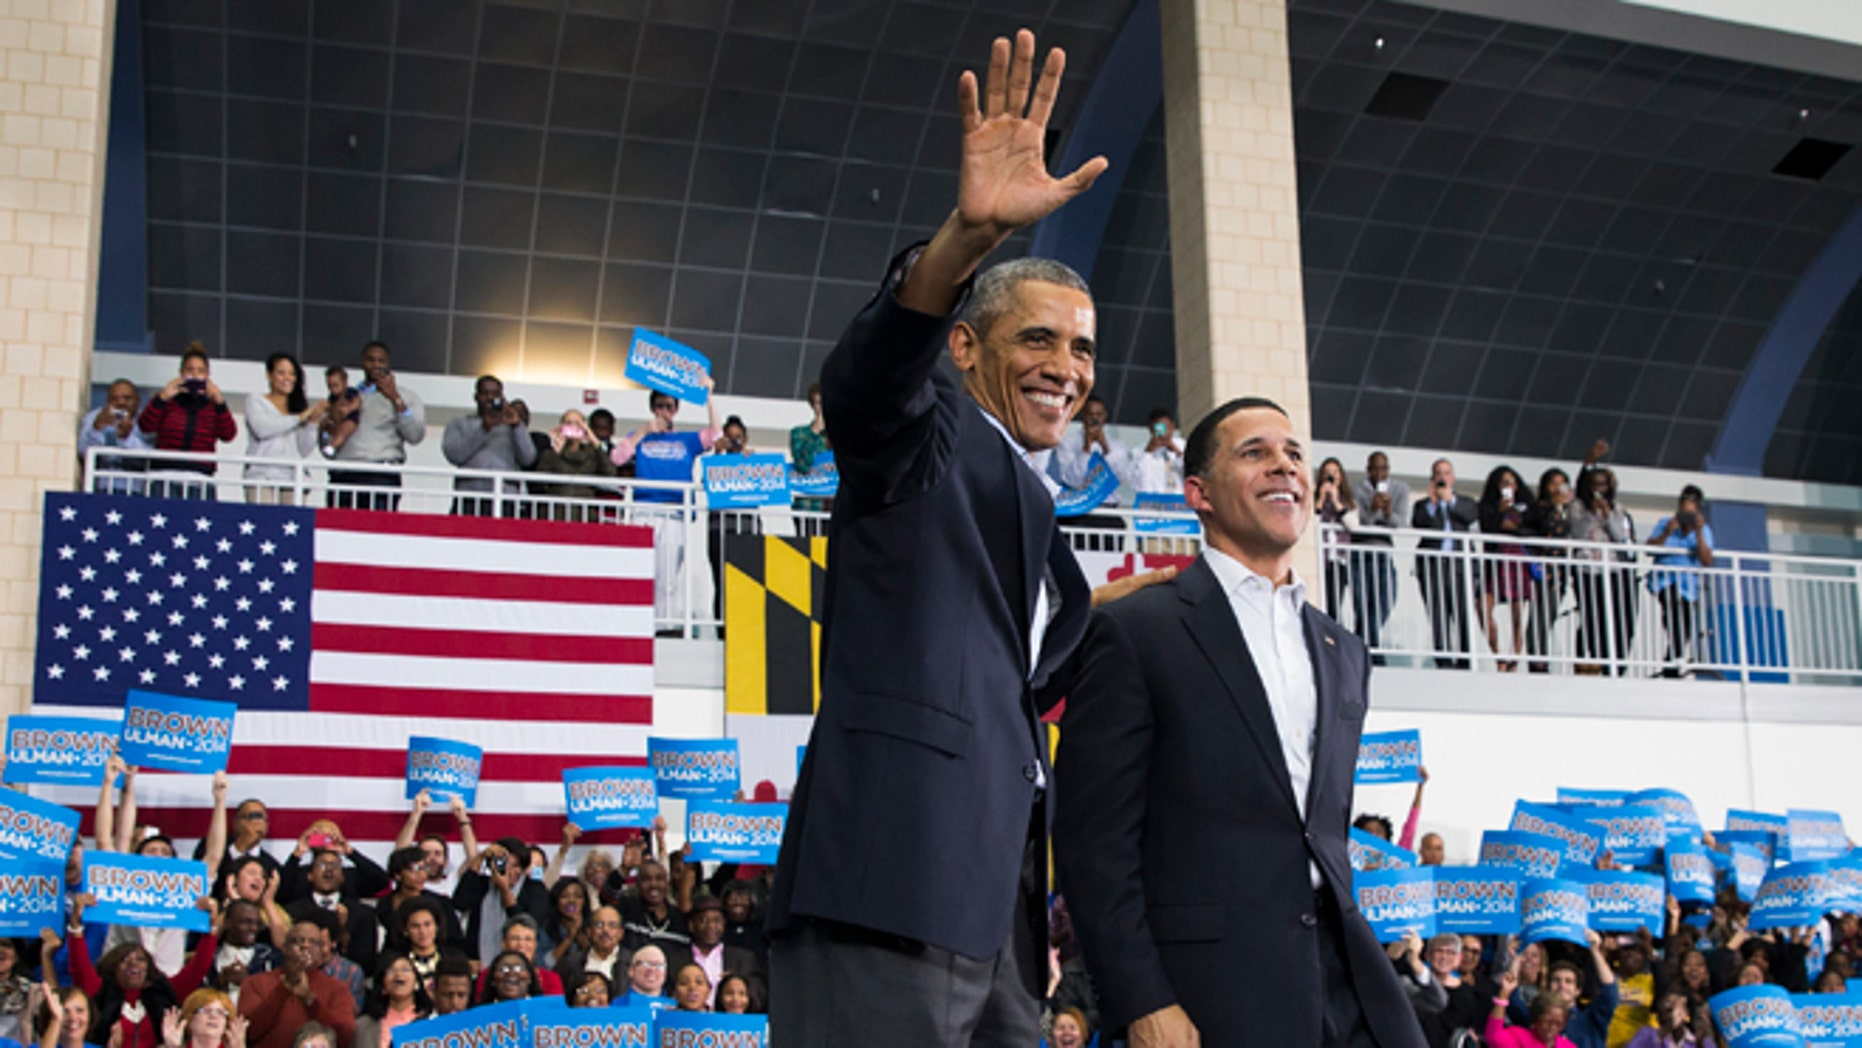 In this Sunday, Oct. 19, 2014 photo, President Barack Obama, left, stands with Maryland gubernatorial candidate Anthony Brown during a campaign rally at Wise High School in Upper Marlboro, Md.